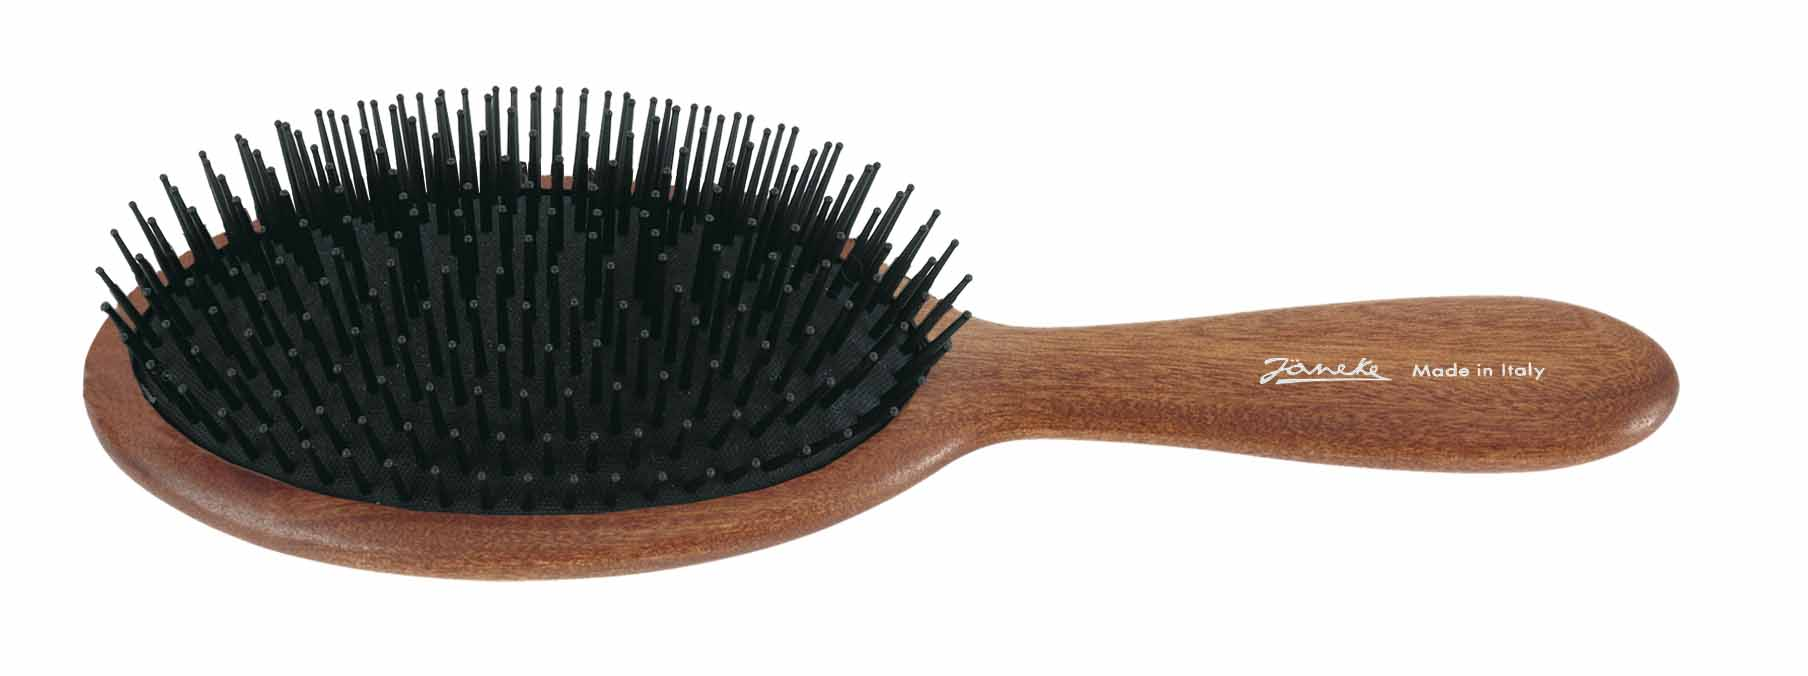 Professional pneumatic brush 23 cm Cod. SP22BK